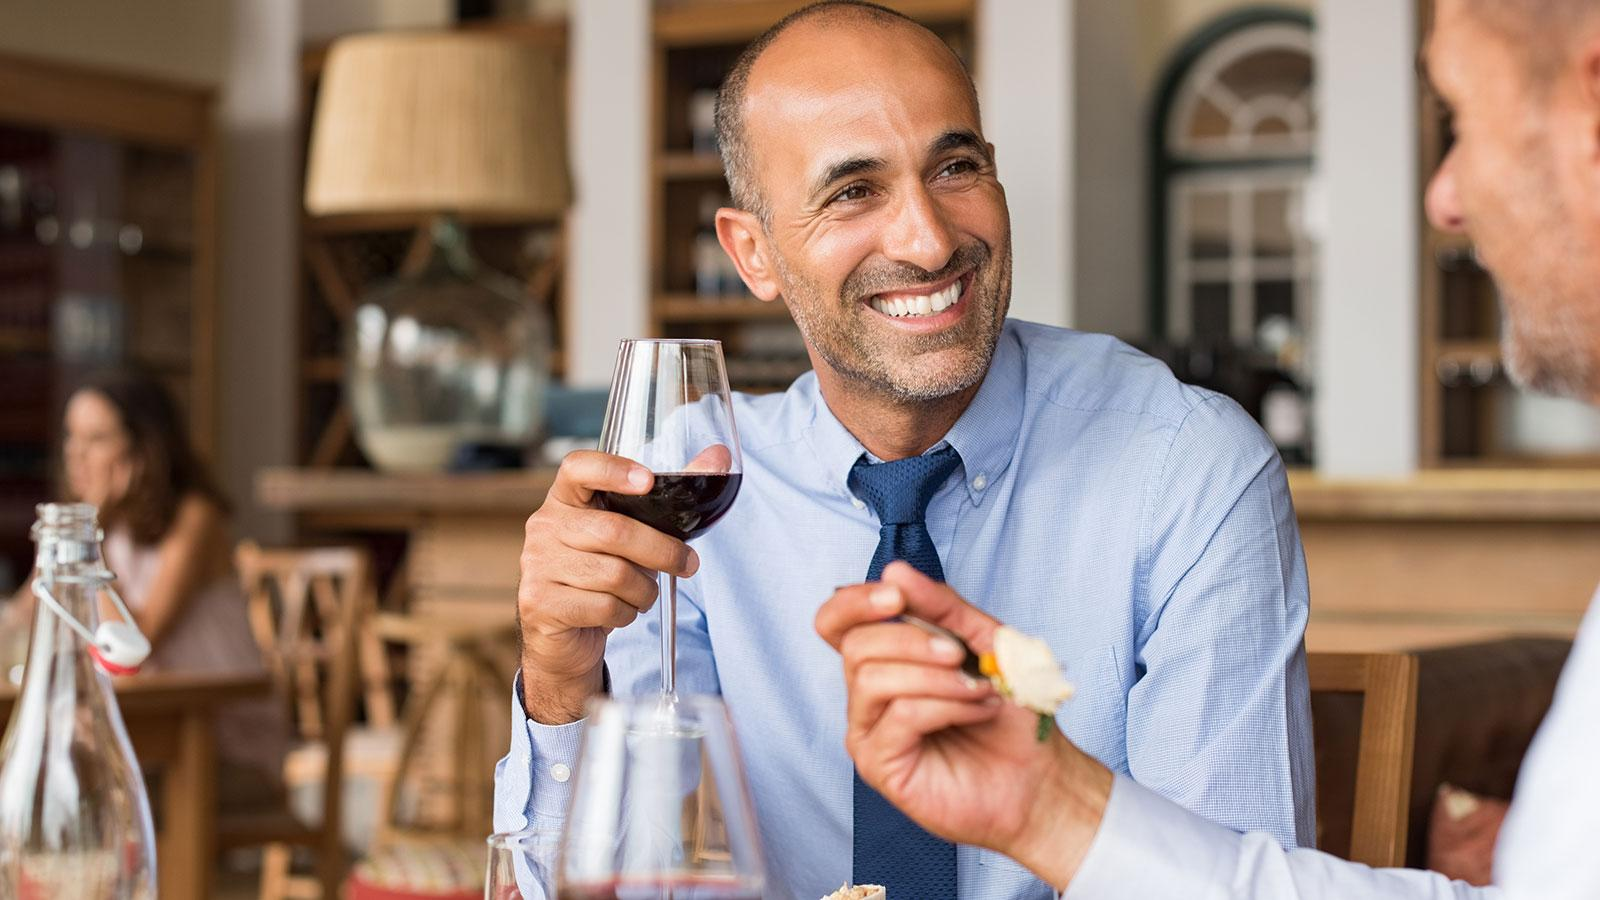 Red Wine Linked to Lower Risk of Prostate Cancer